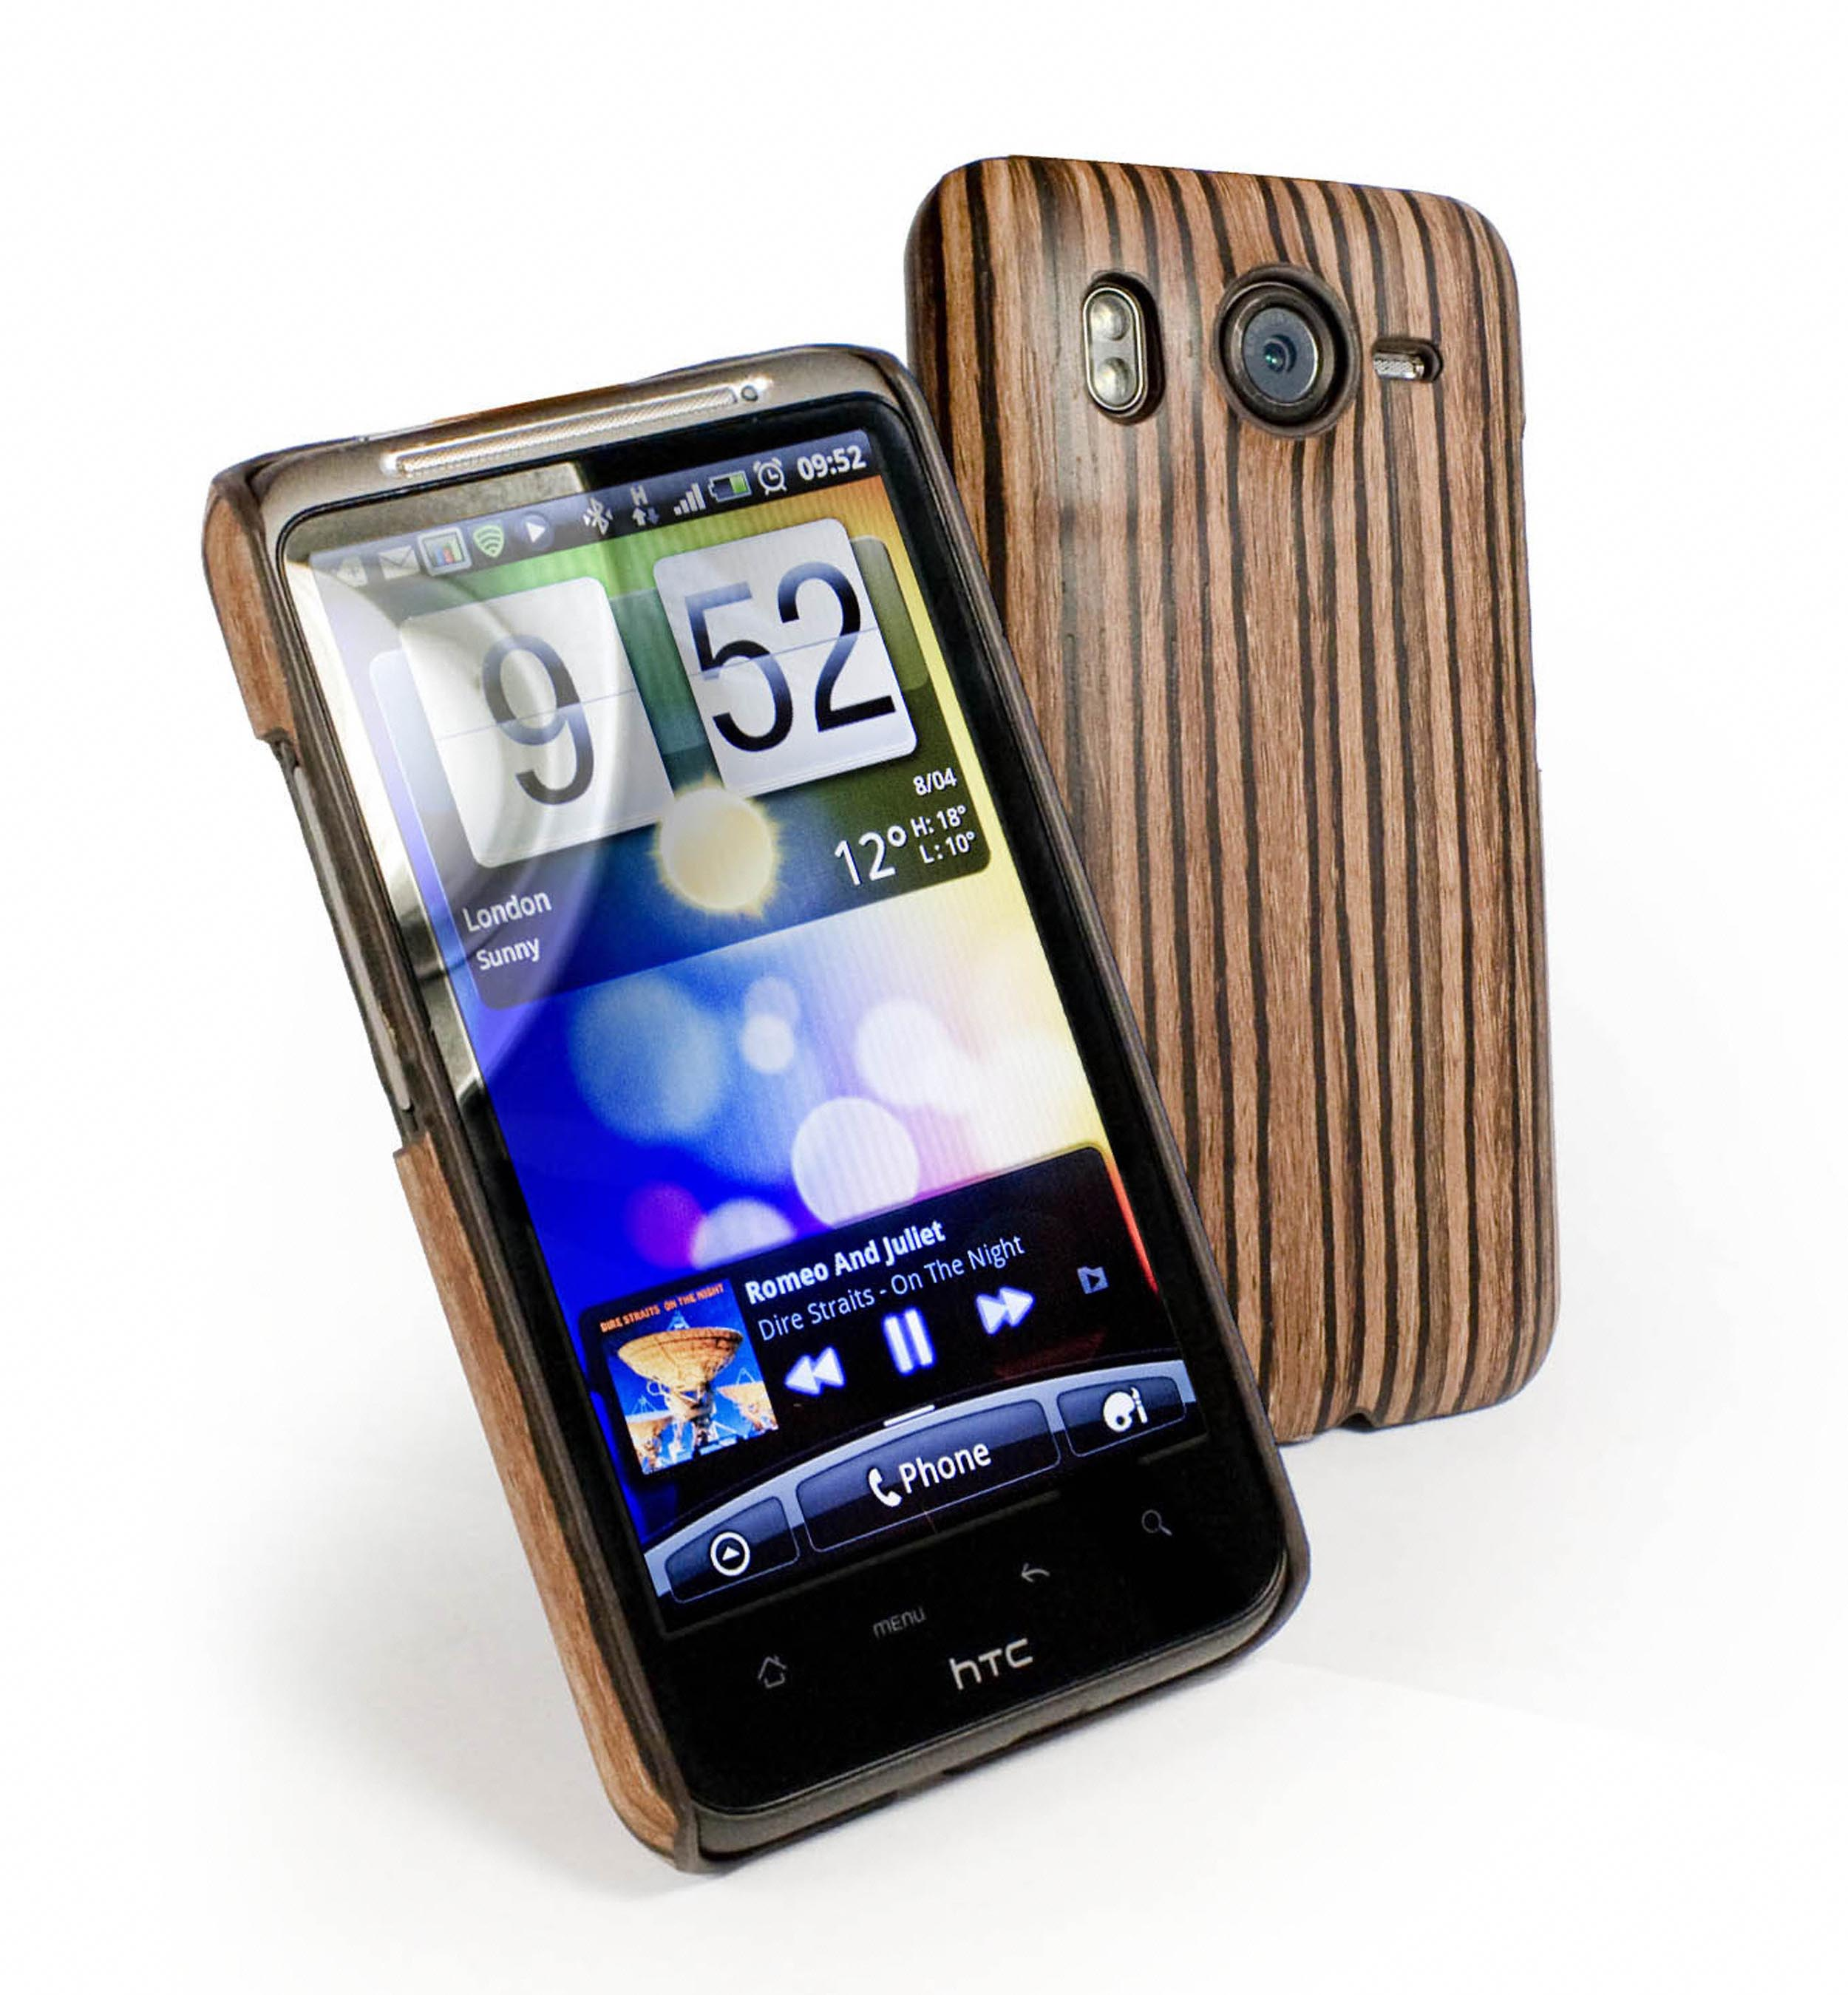 htc desire hd cases and covers and